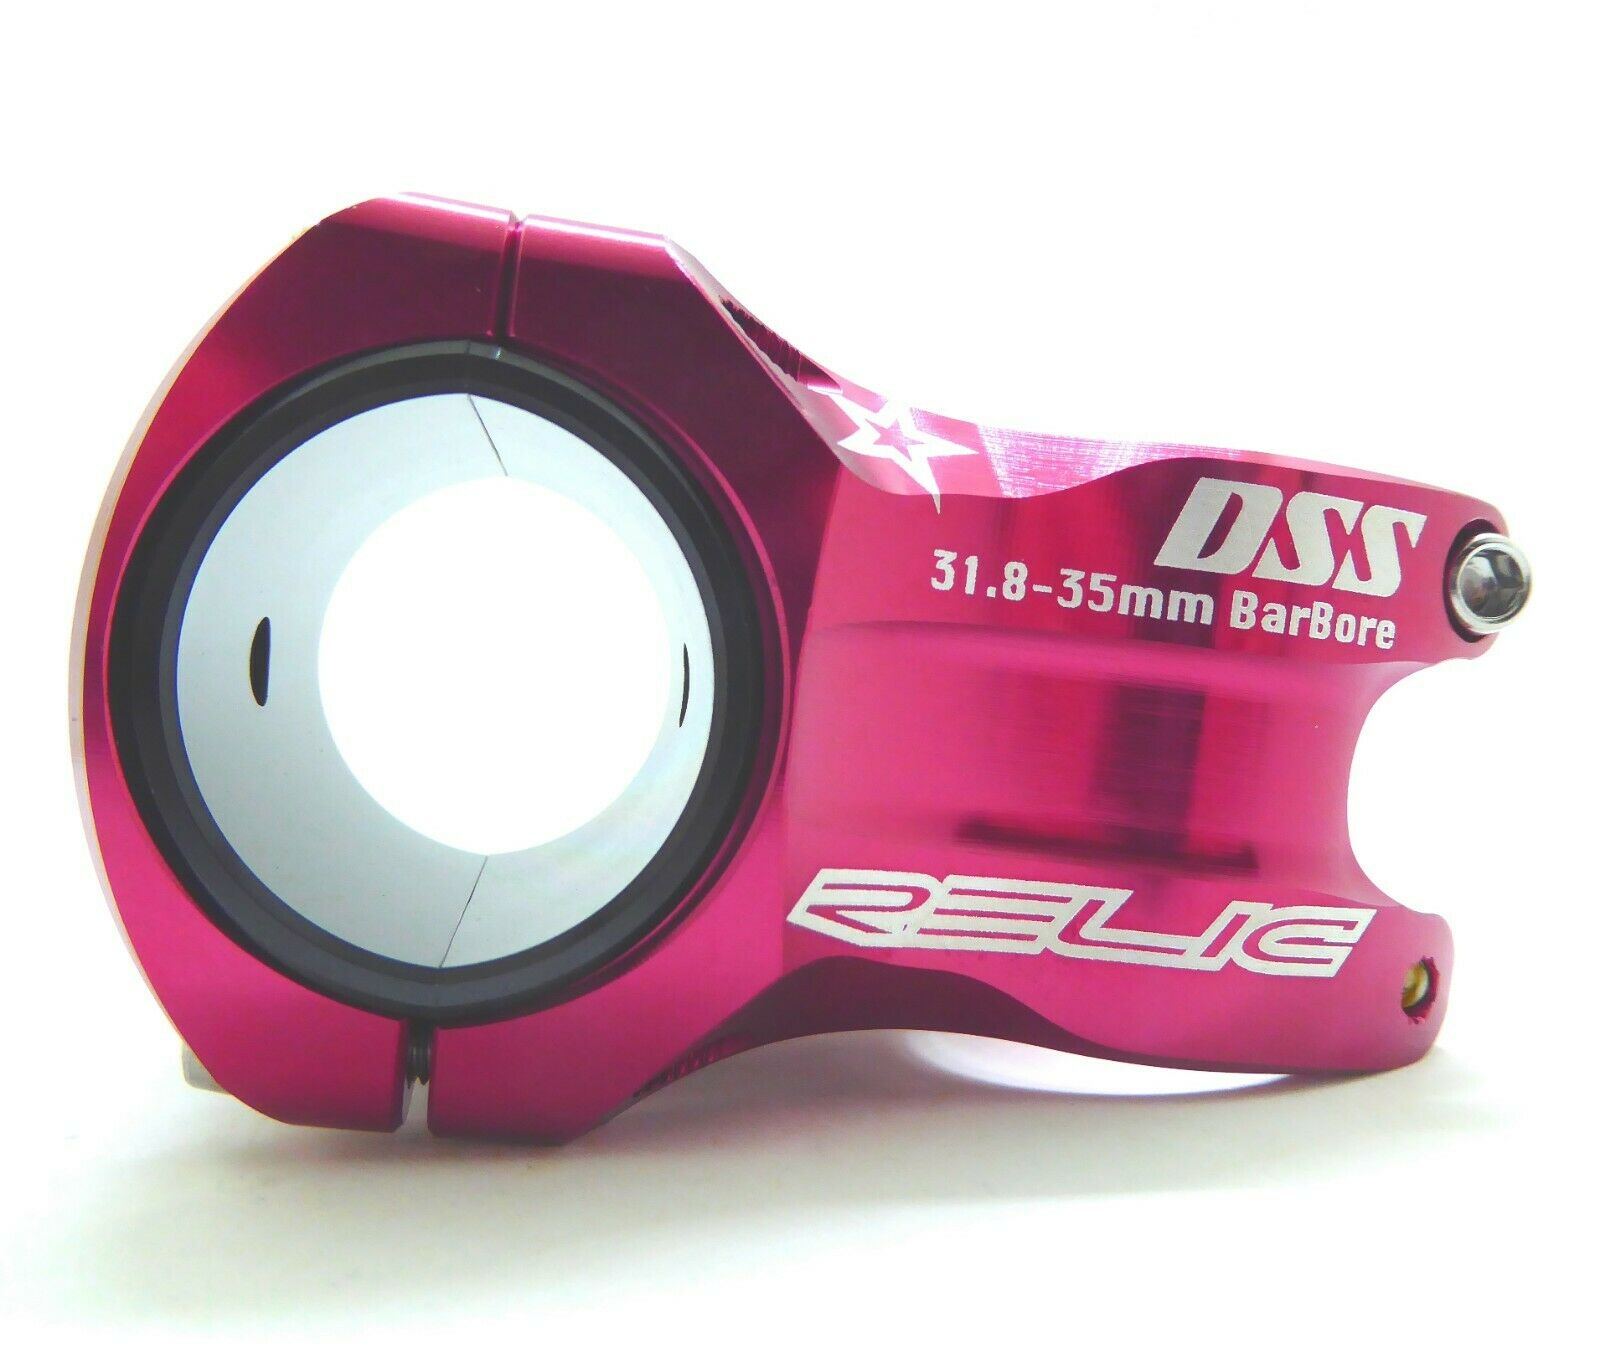 Relic DSS MTB Bike Stem Mountain Bicycle  Handlebar Clamp 50mm Length  all goods are specials